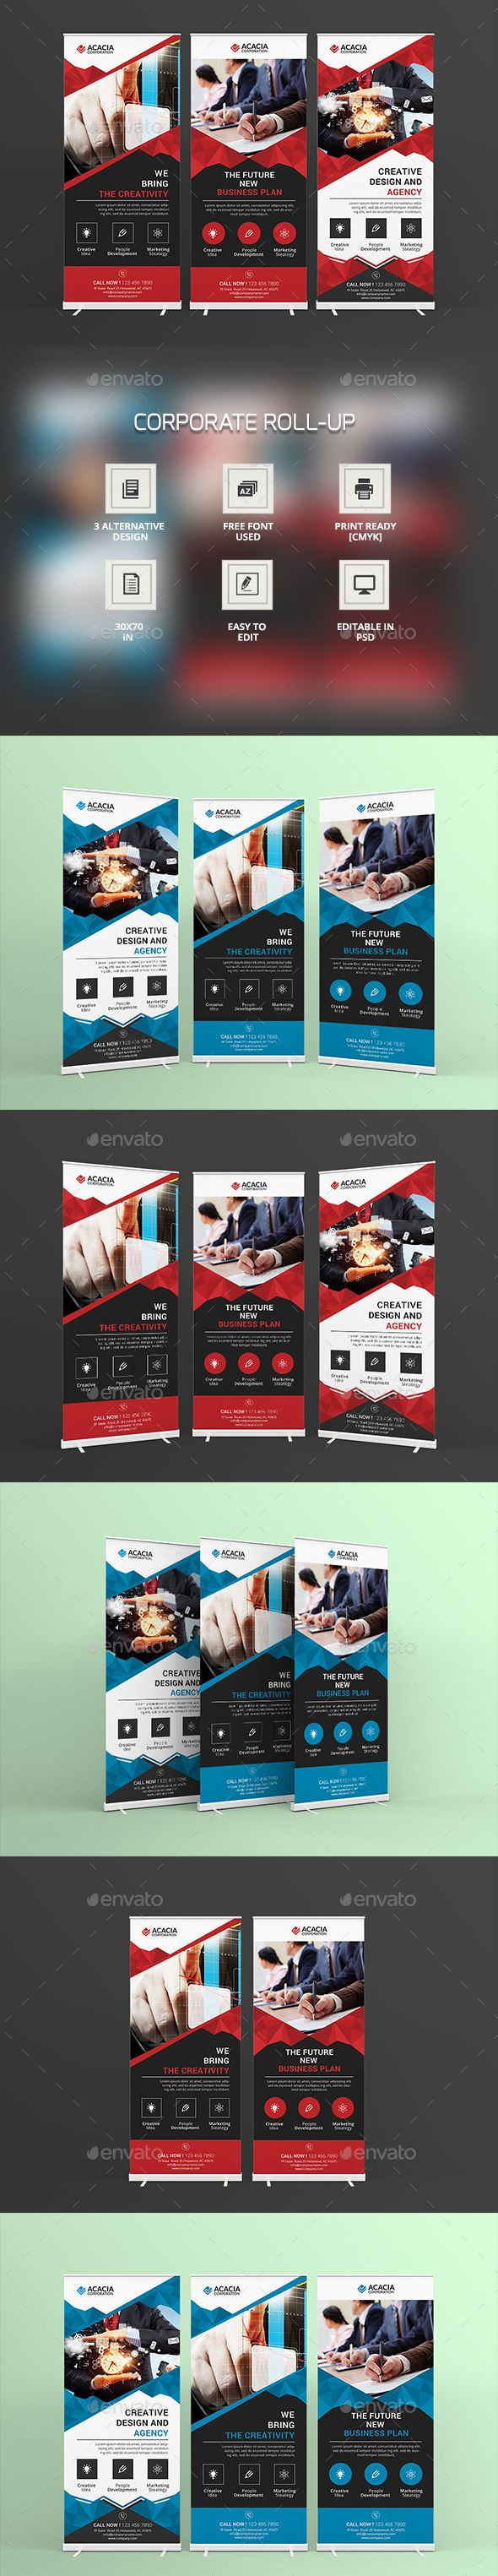 Corporate Roll-Up Banner Template PSD. Download here: http://graphicriver.net/item/corporate-rollup/15190570?ref=ksioks